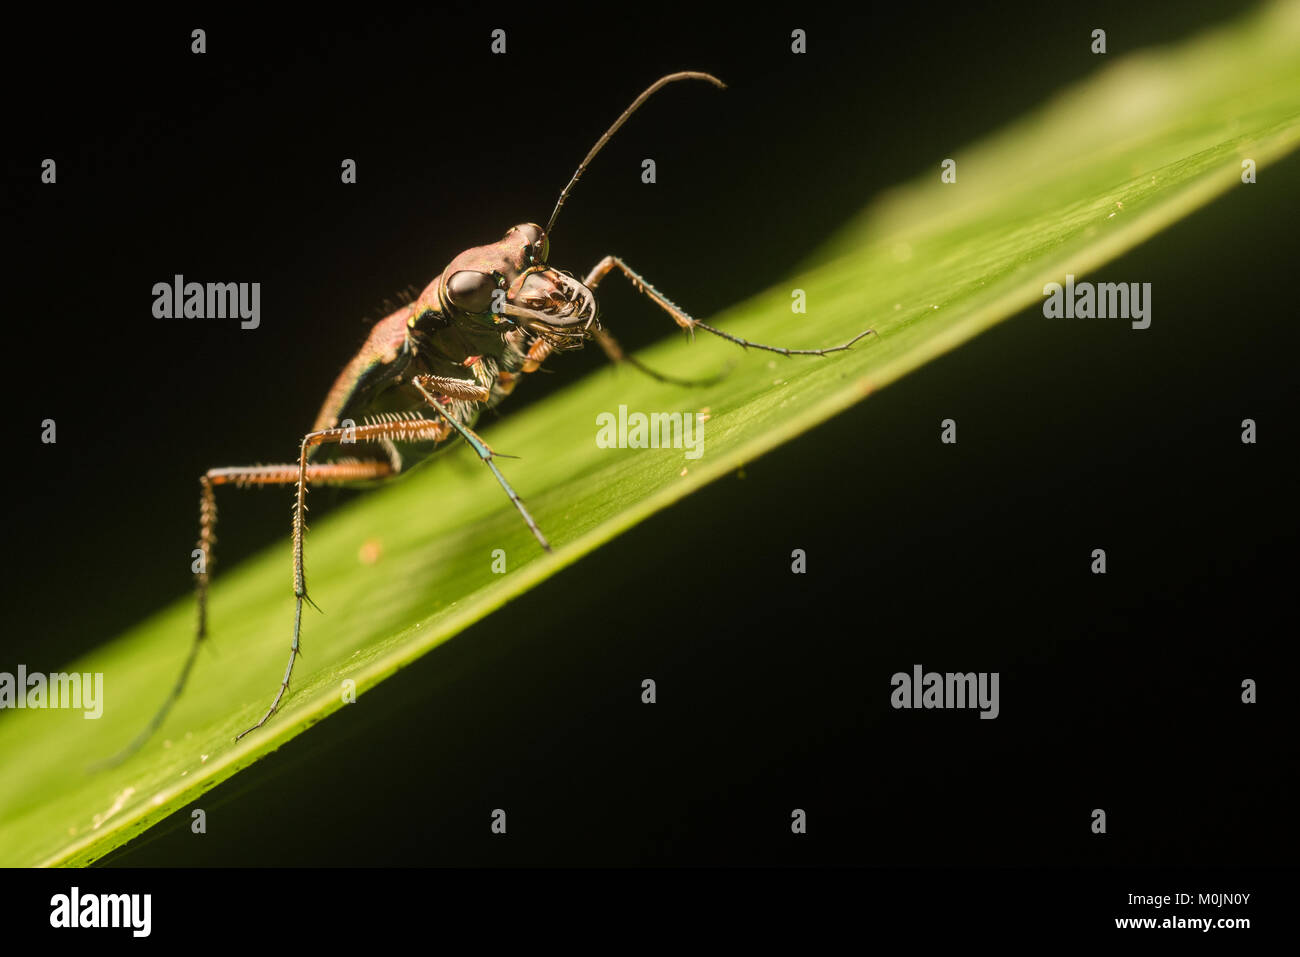 A tropical tiger beetle perches on a leaf in the Colombian Amazon. - Stock Image